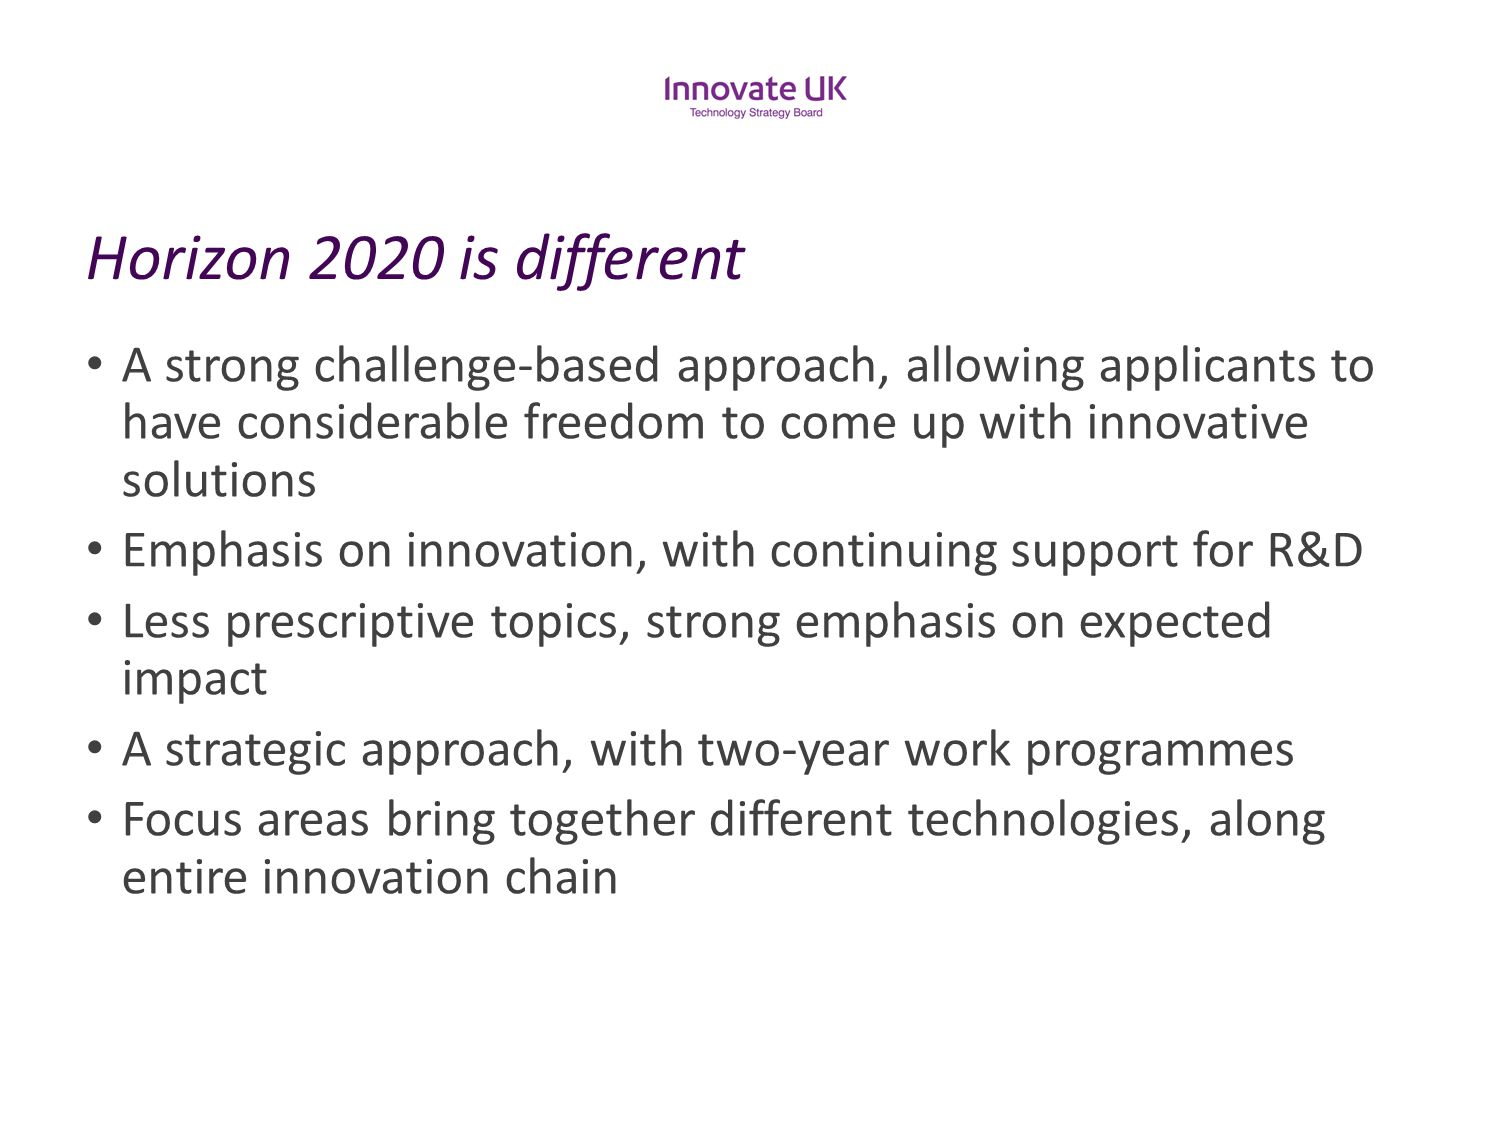 Horizon 2020 is different A strong challenge-based approach, allowing applicants to have considerable freedom to come up with innovative solutions.